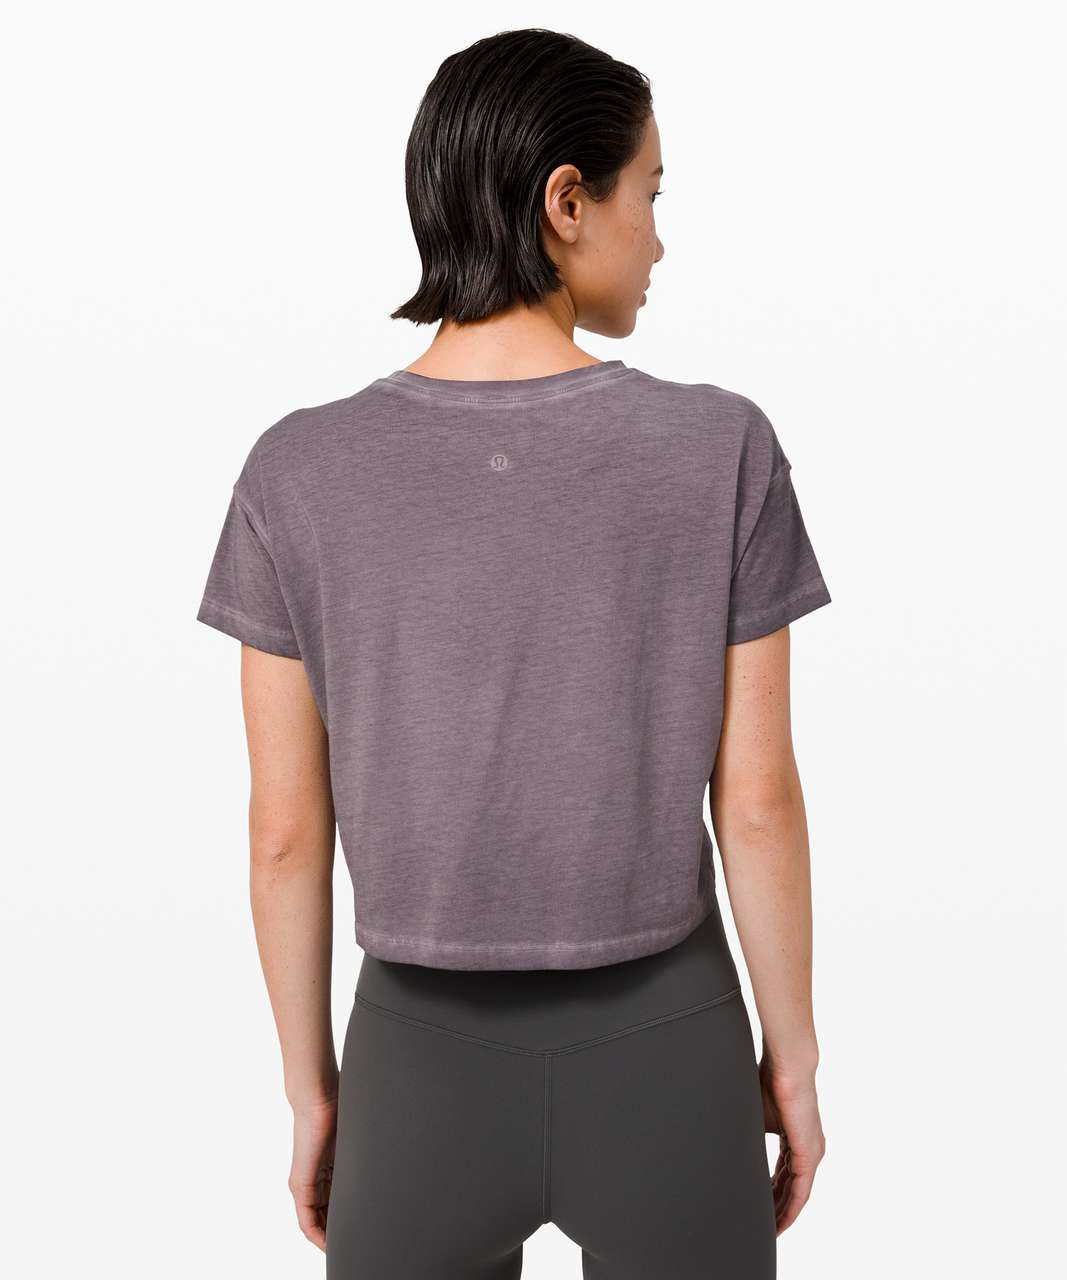 Lululemon Cates Tee *Fade - Washed Lunar Rock